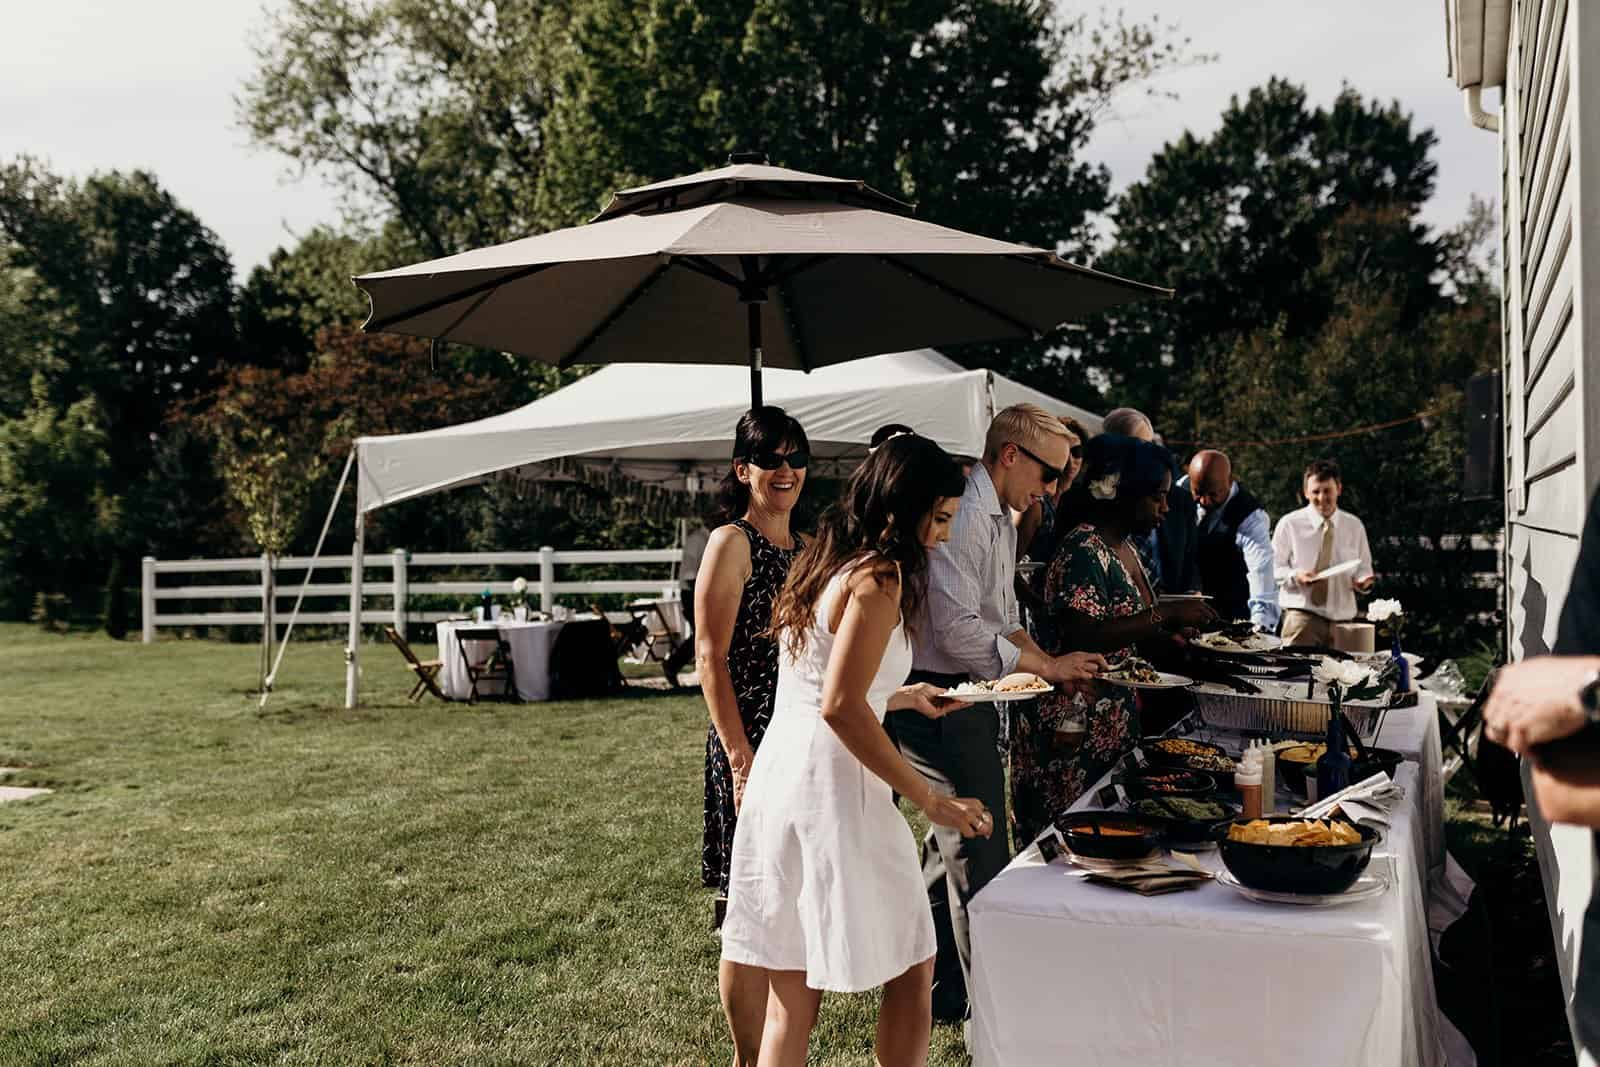 buffet line in backyard wedding